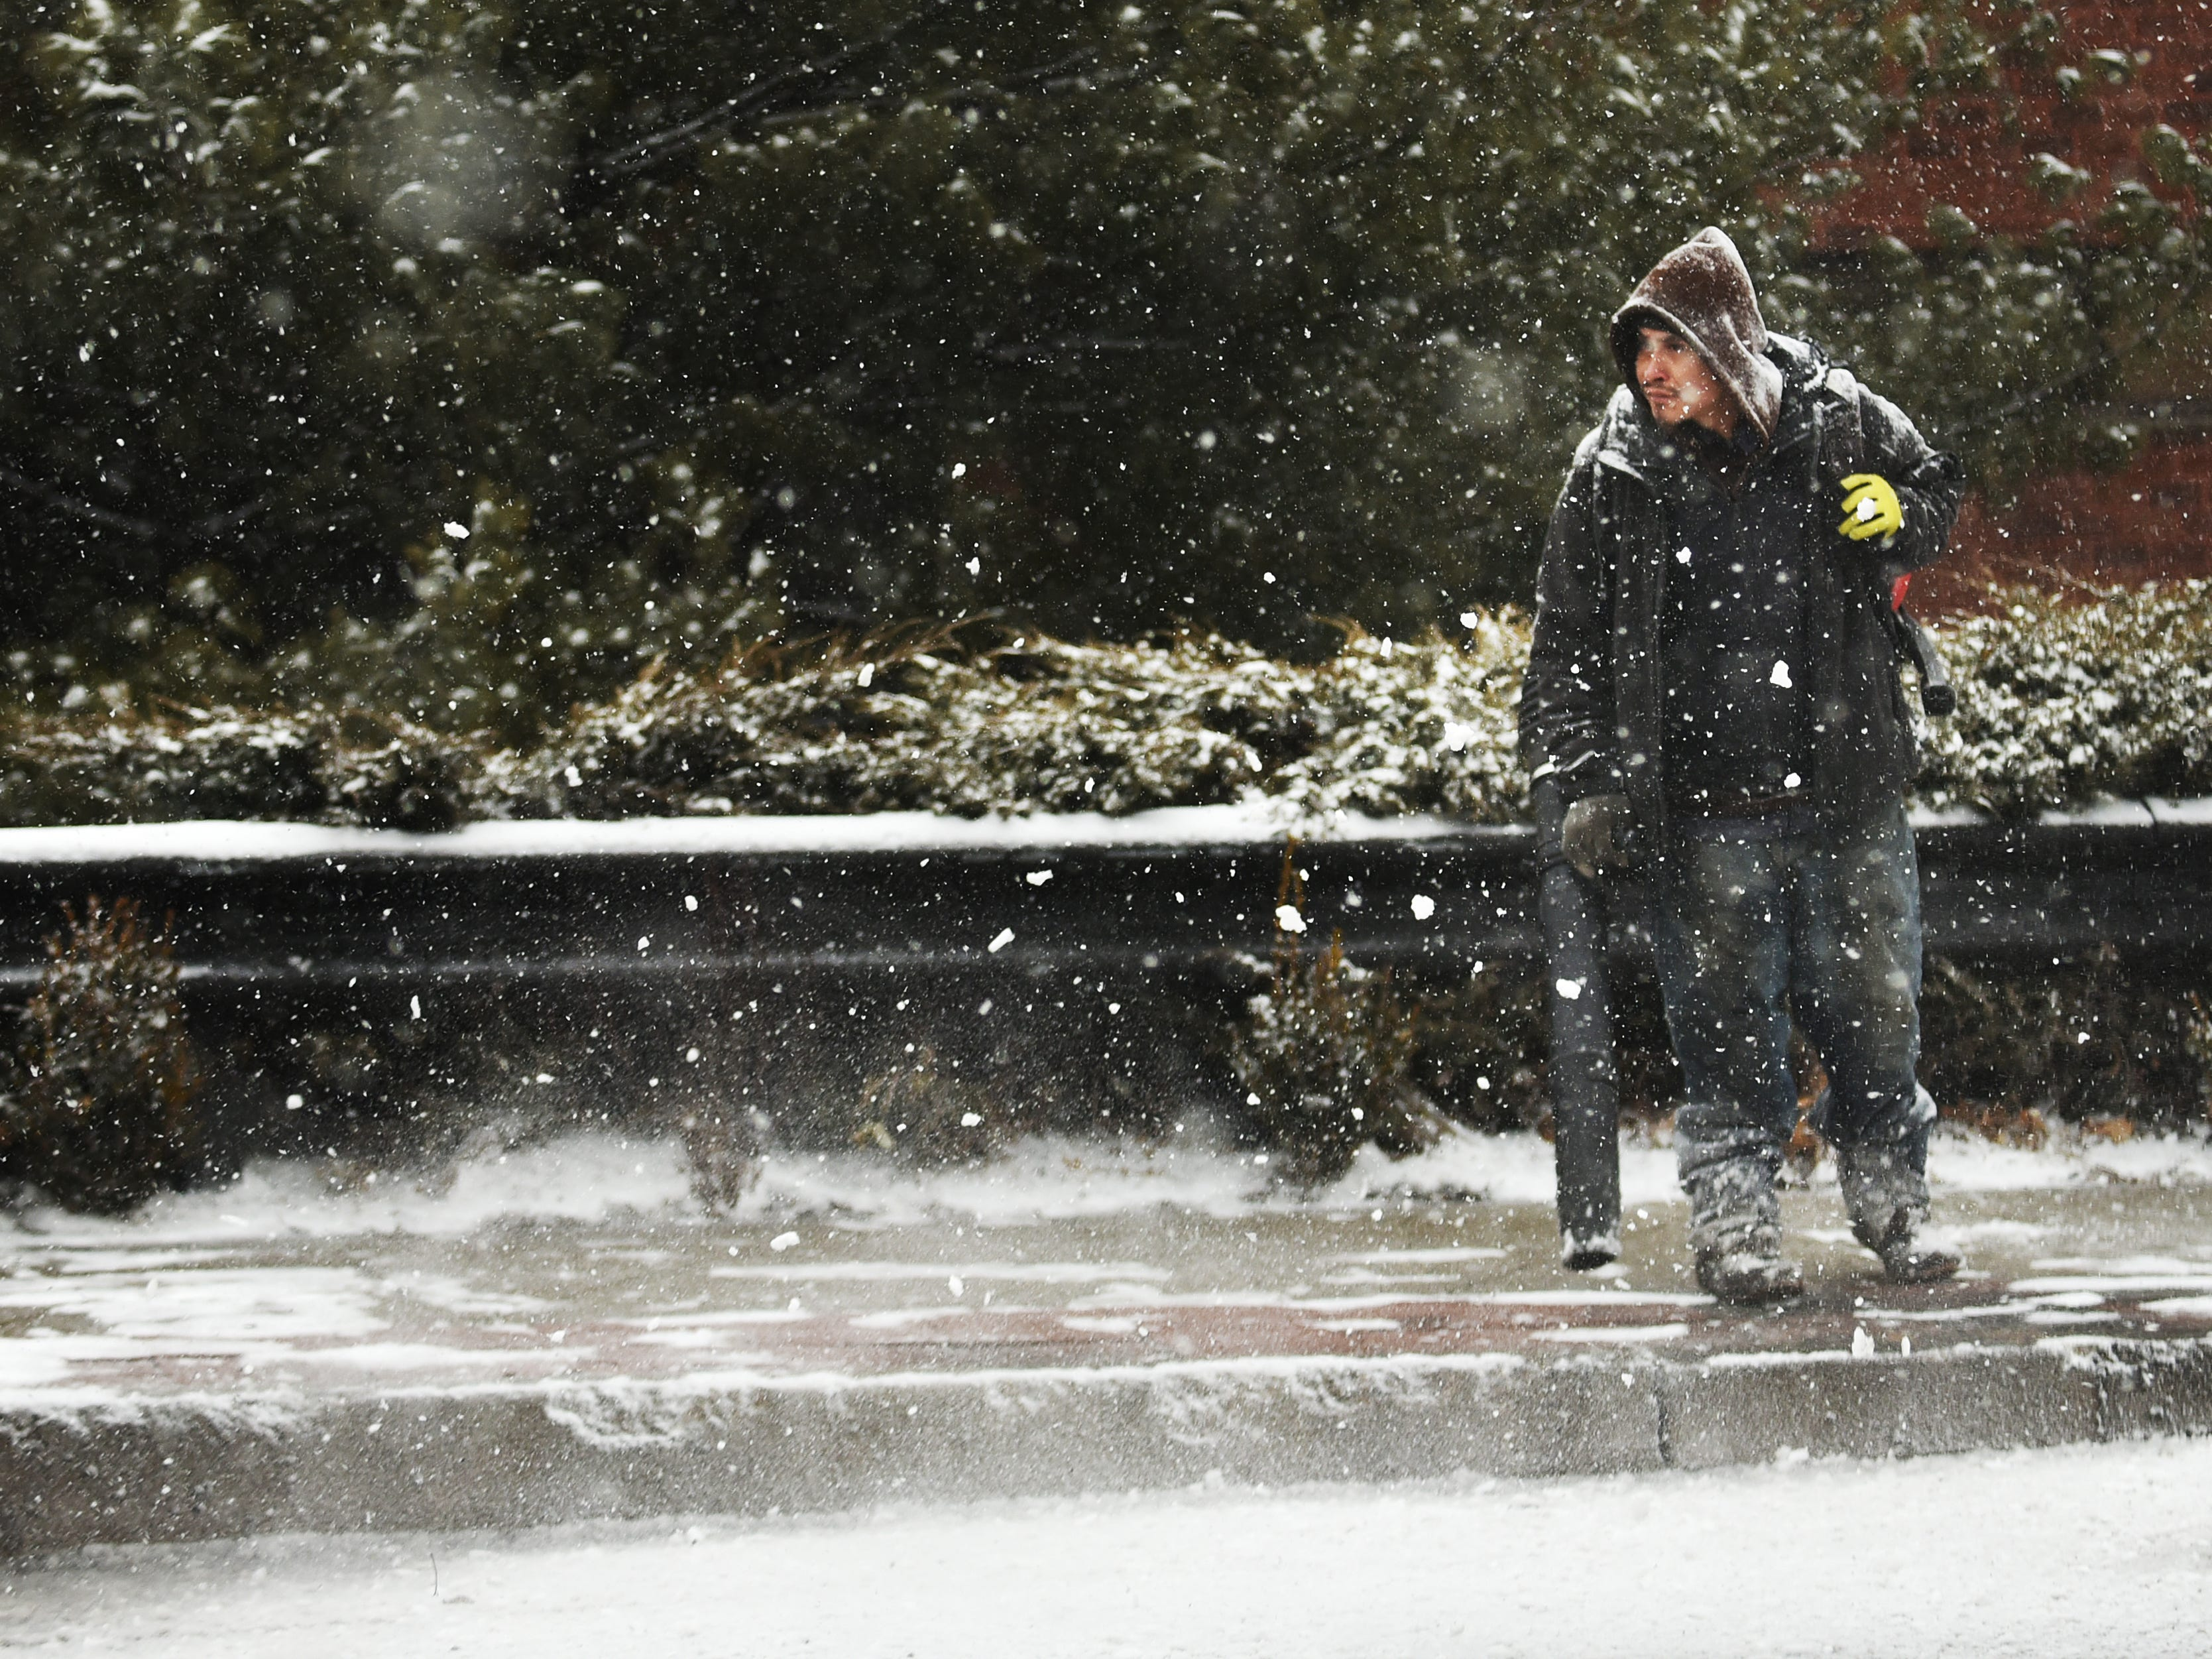 A man clears snow from the sidewalk with a snow blower along Cedar Lane in Teaneck on Wednesday February 20, 2019.